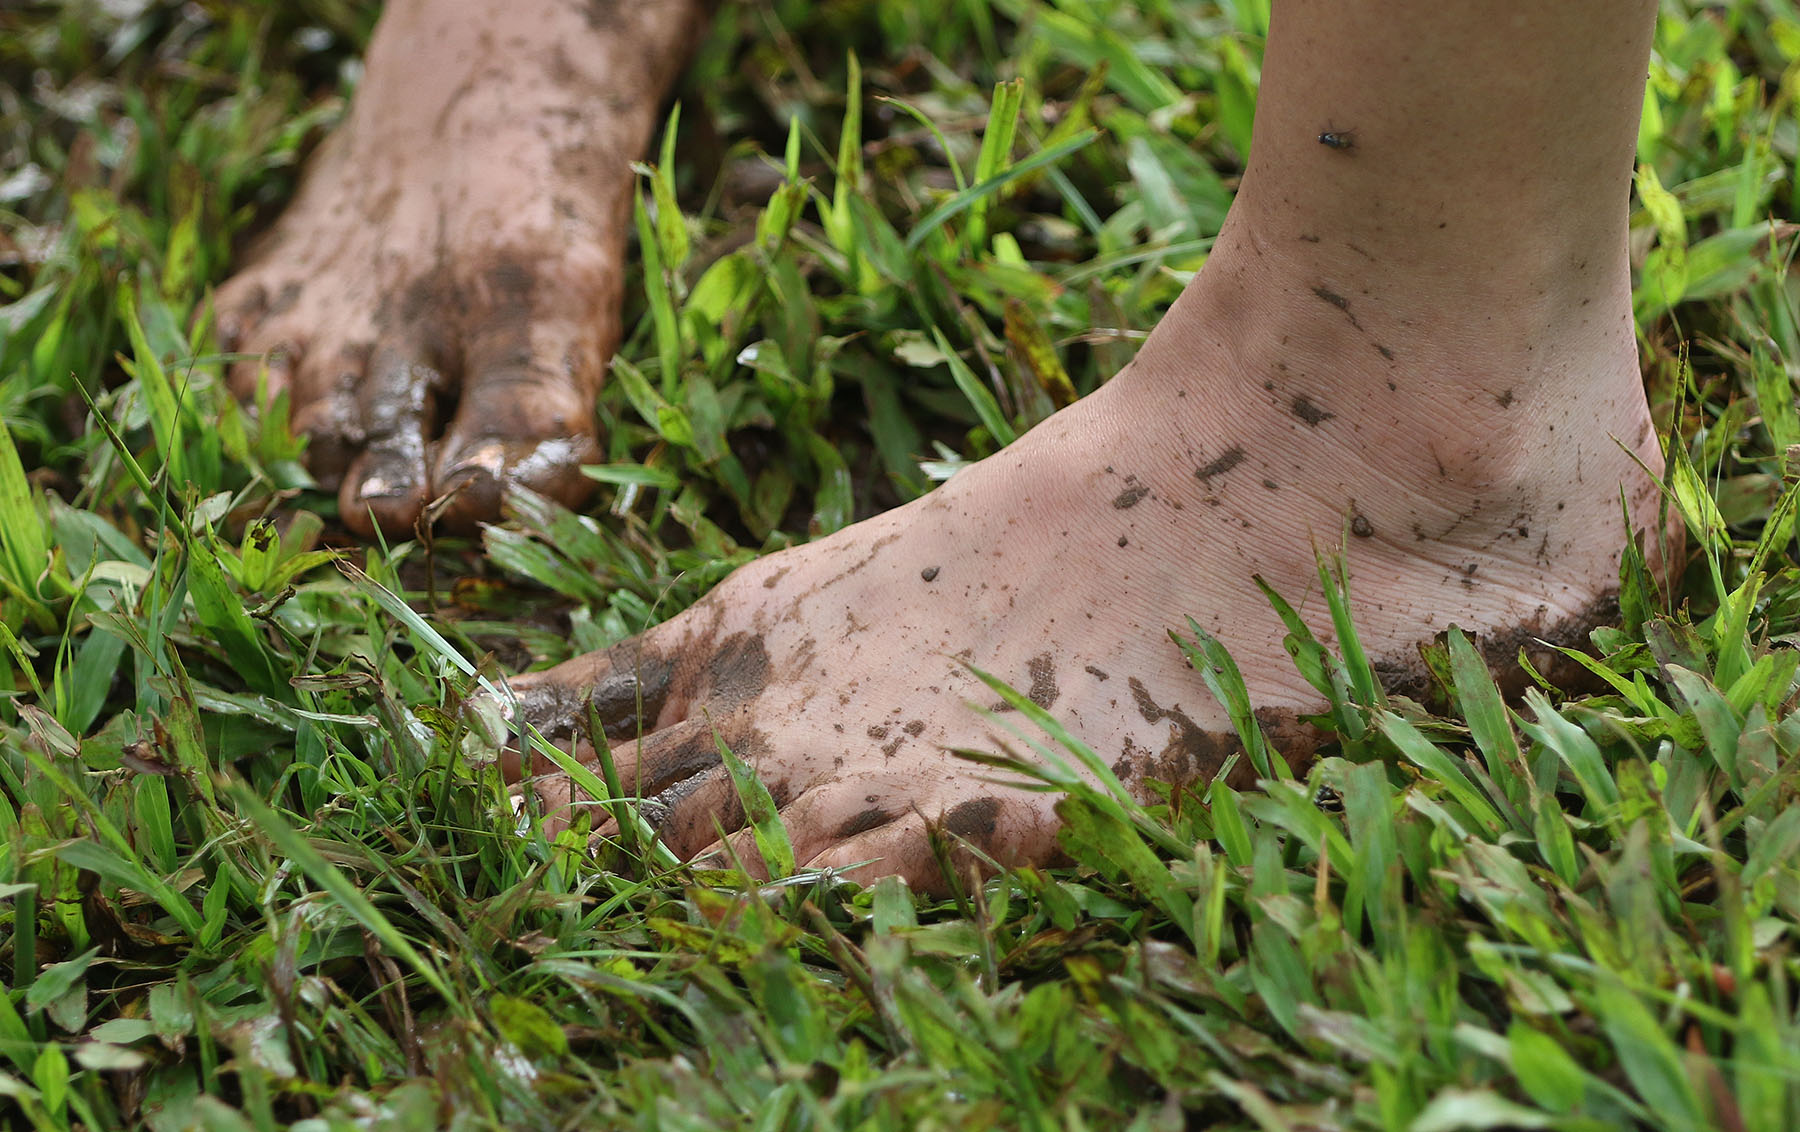 <p>One of the visitors to Ho&#8217;oulu &#8216;Aina Nature Park goes barefoot in muddy grass.</p>